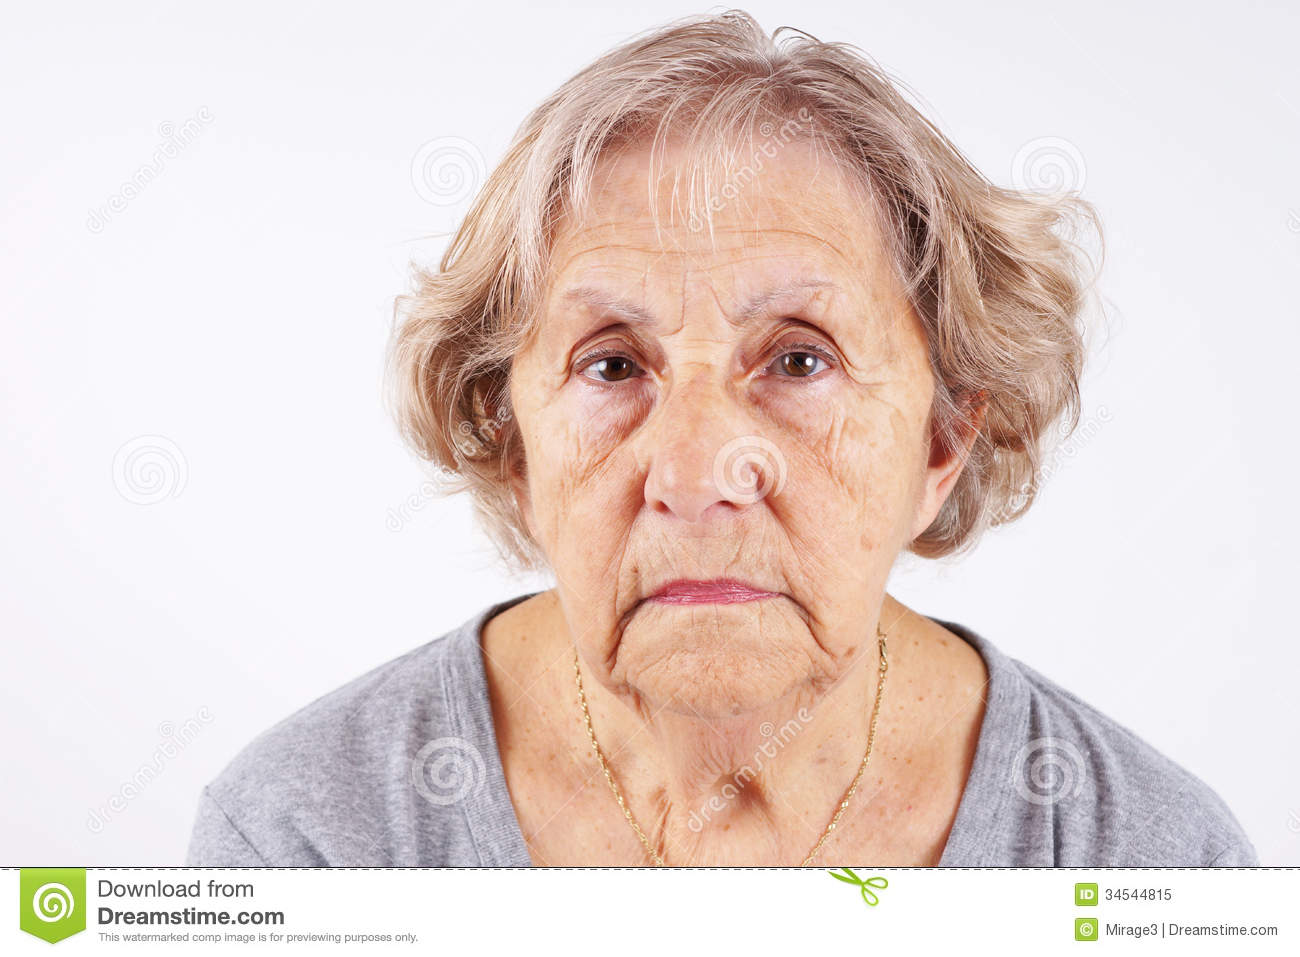 Face of senior woman, candid, natural, no retouching, great details.